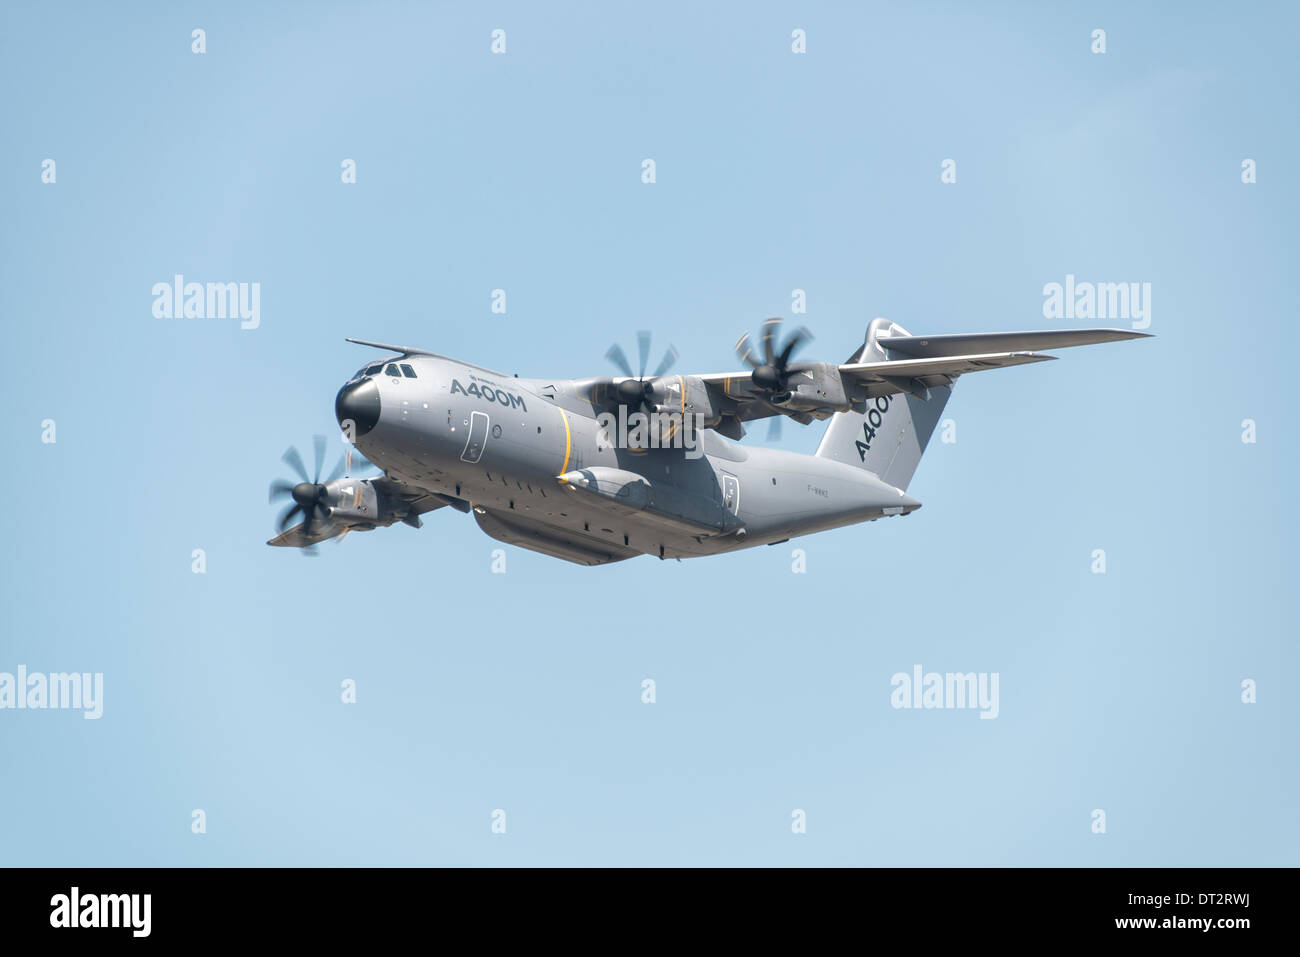 Airbus A400M Atlas, Europe's new turboprop powered military transport aircraft, displays at the 2013 RIAT - Stock Image